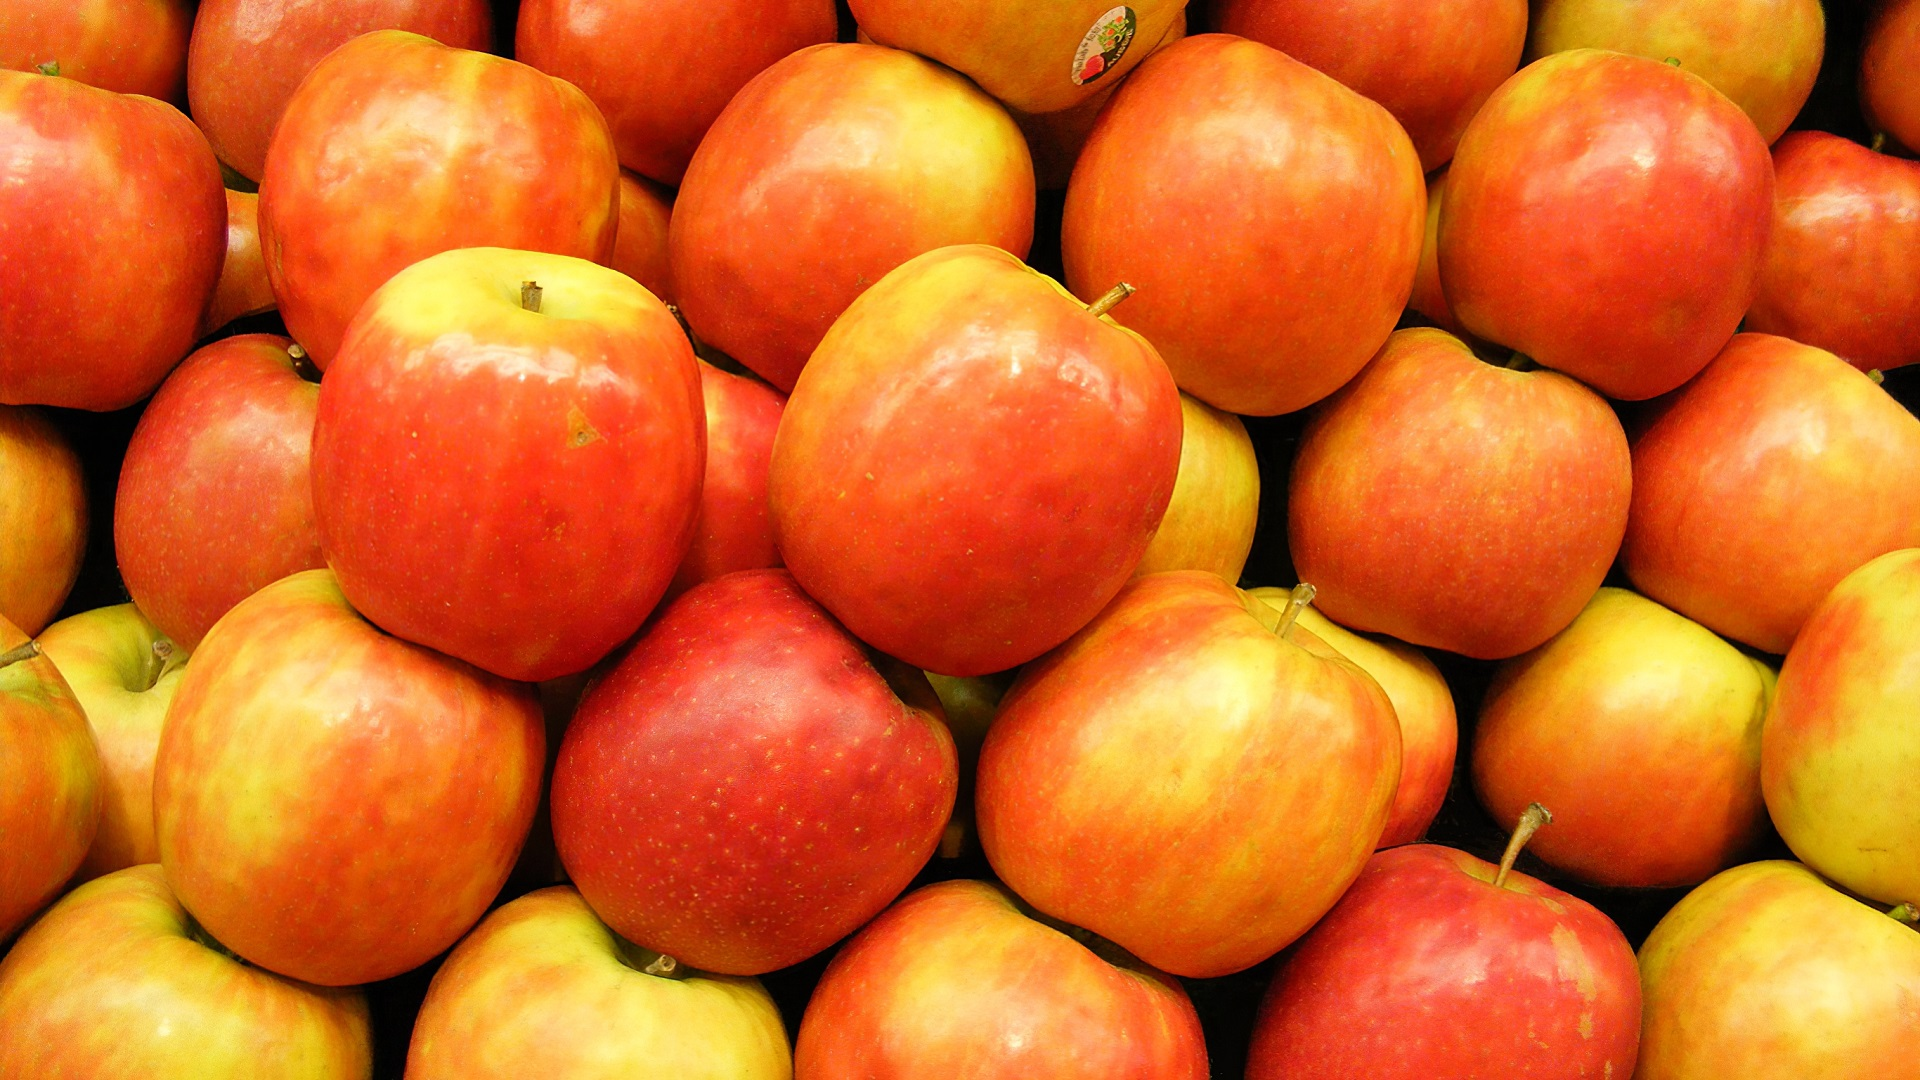 Sweet red apples wallpaper and background image 1366x768 - Red apple wallpaper ...